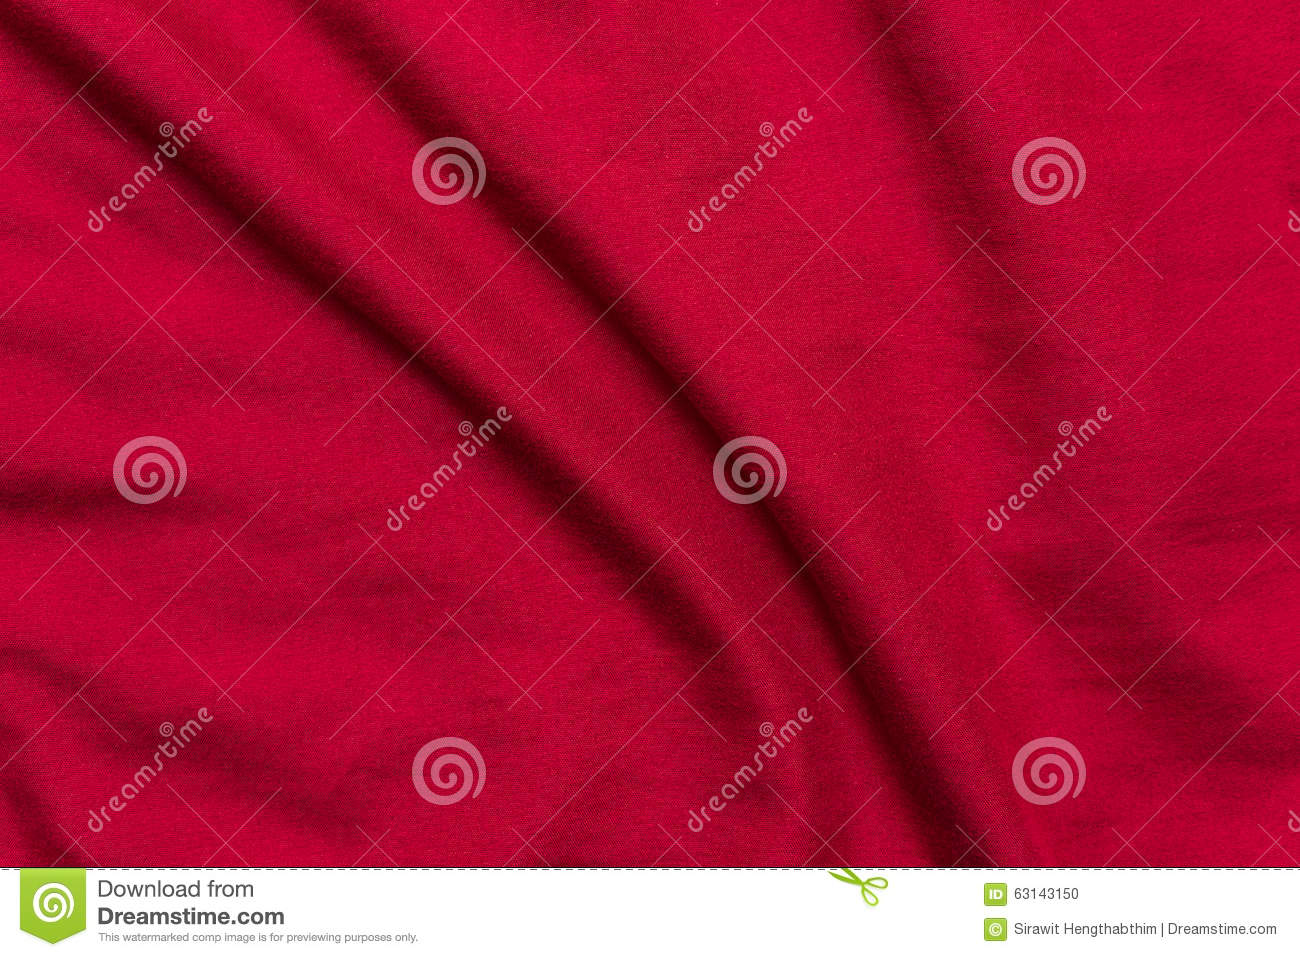 Bed sheets texture - Red Bed Sheets Background Texture